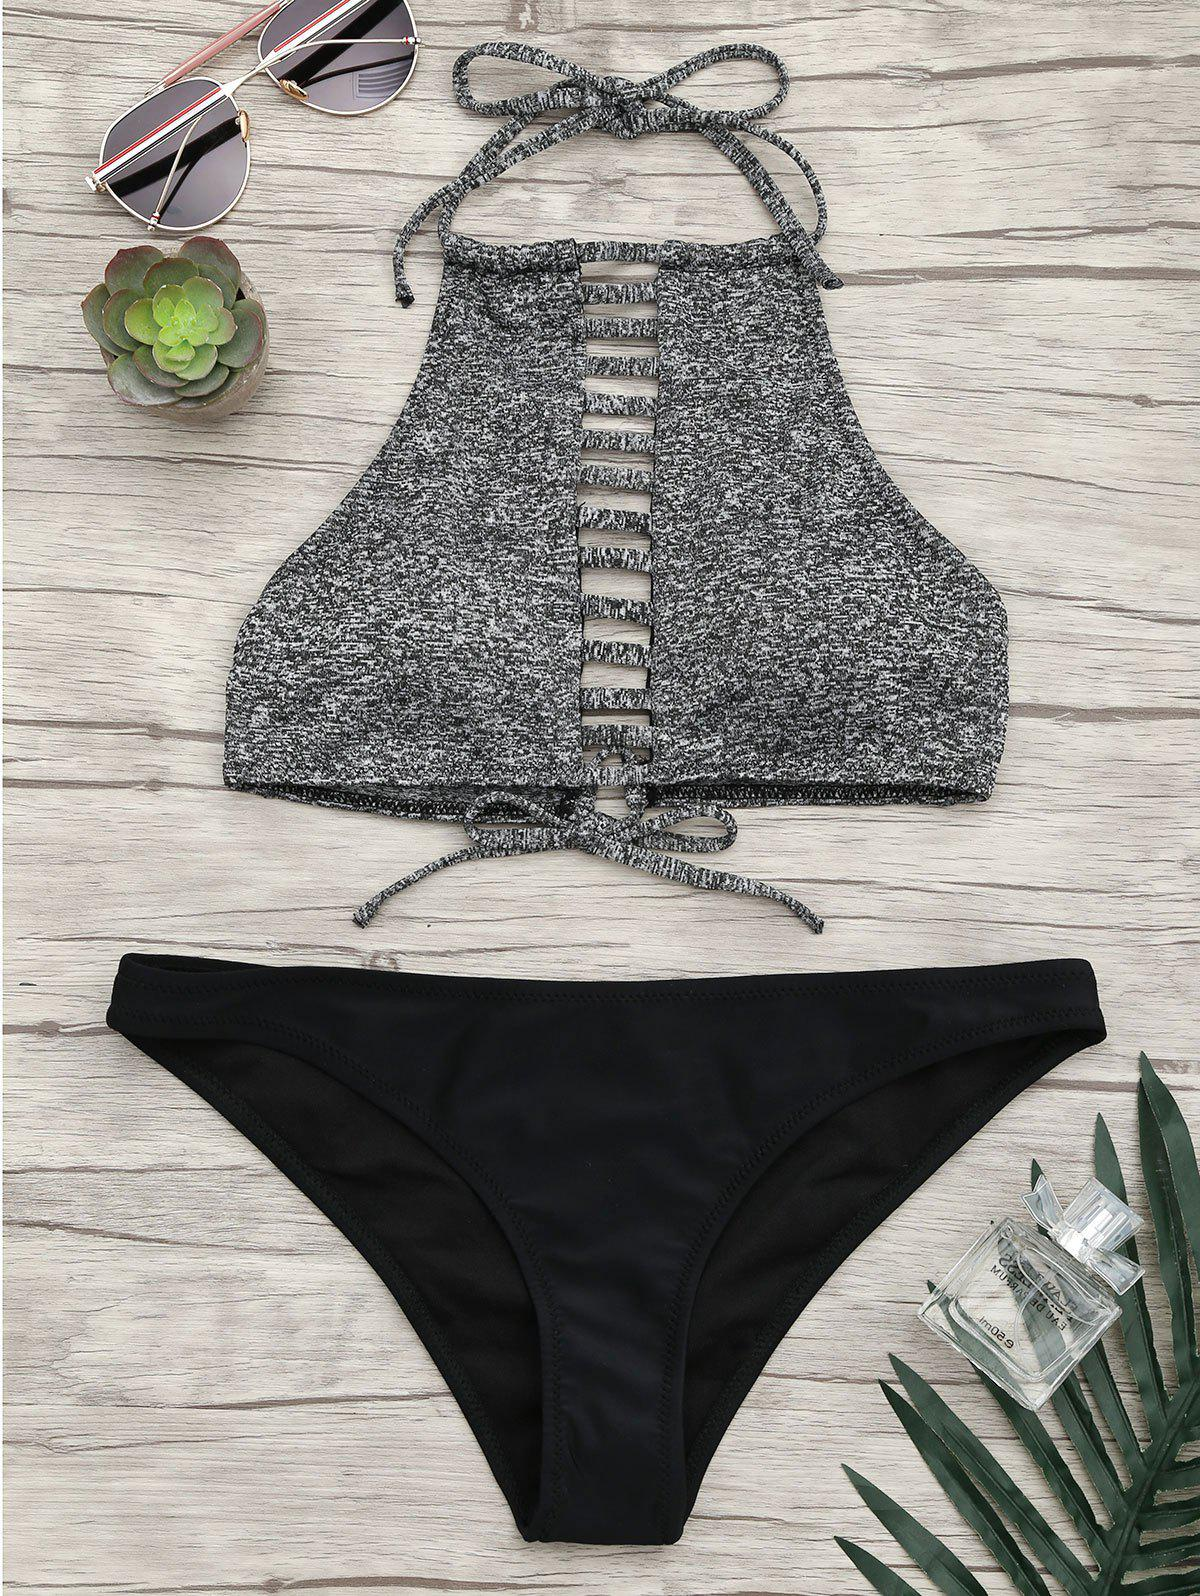 Halter Ladder Cutout Bikini SetWOMEN<br><br>Size: S; Color: GRAY; Swimwear Type: Bikini; Gender: For Women; Material: Nylon,Spandex; Bra Style: Padded; Support Type: Wire Free; Neckline: Halter; Pattern Type: Patchwork; Embellishment: Hollow Out; Waist: Natural; Elasticity: Elastic; Weight: 0.2000kg; Package Contents: 1 x Bra  1 x Briefs;